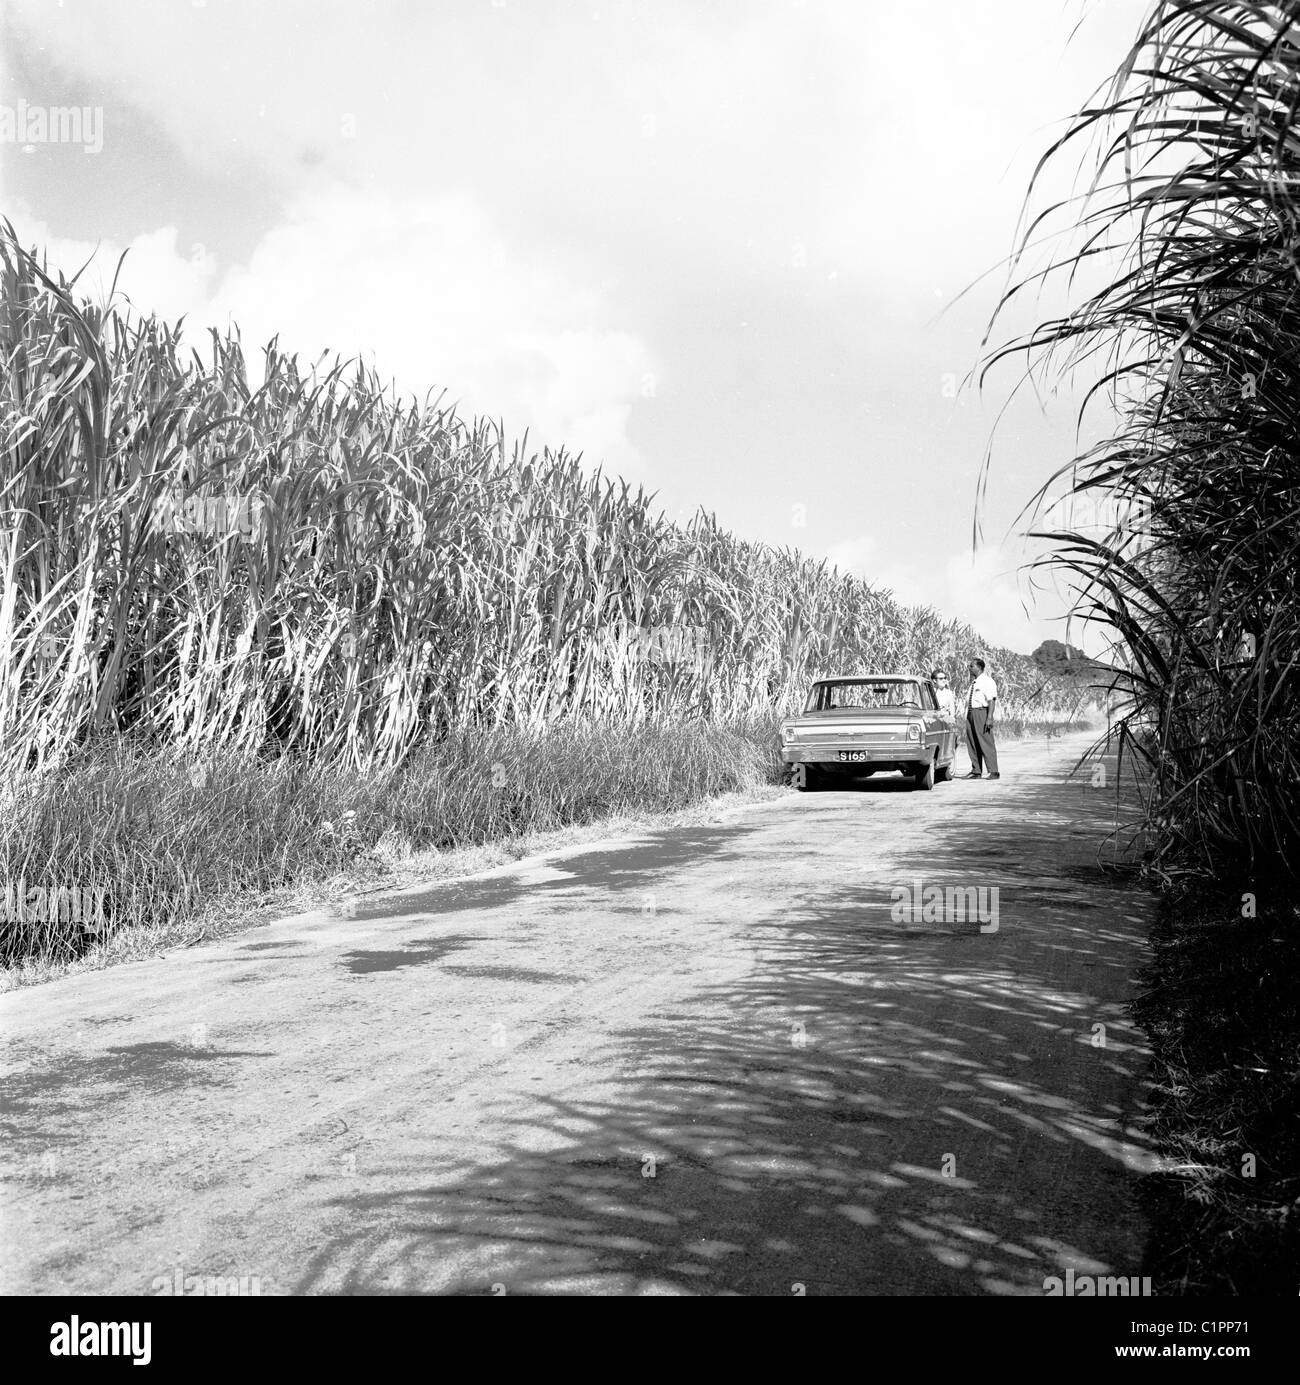 1950s, Barbados. Man and car parked on an empty road beside fields of high growing crops in this historical picture. - Stock Image